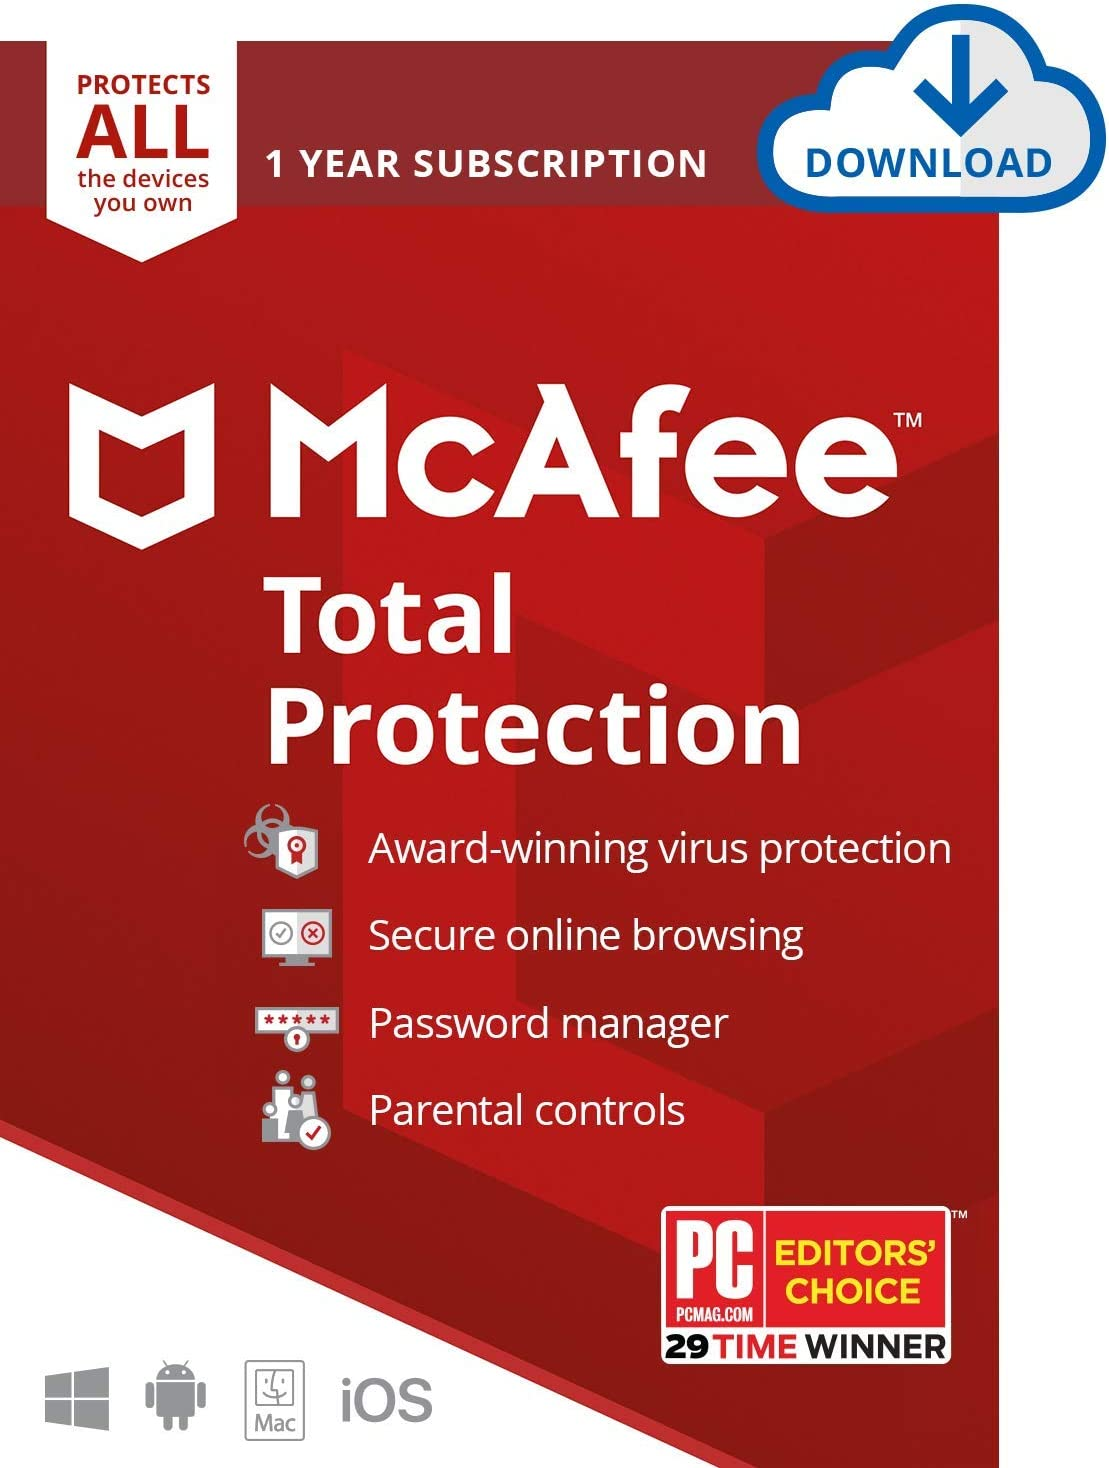 McAfee Total Protection 2020 Unlimited Devices, Antivirus Internet Security Software Password Manager, Parental Control, Privacy, 1 Year - Download Code